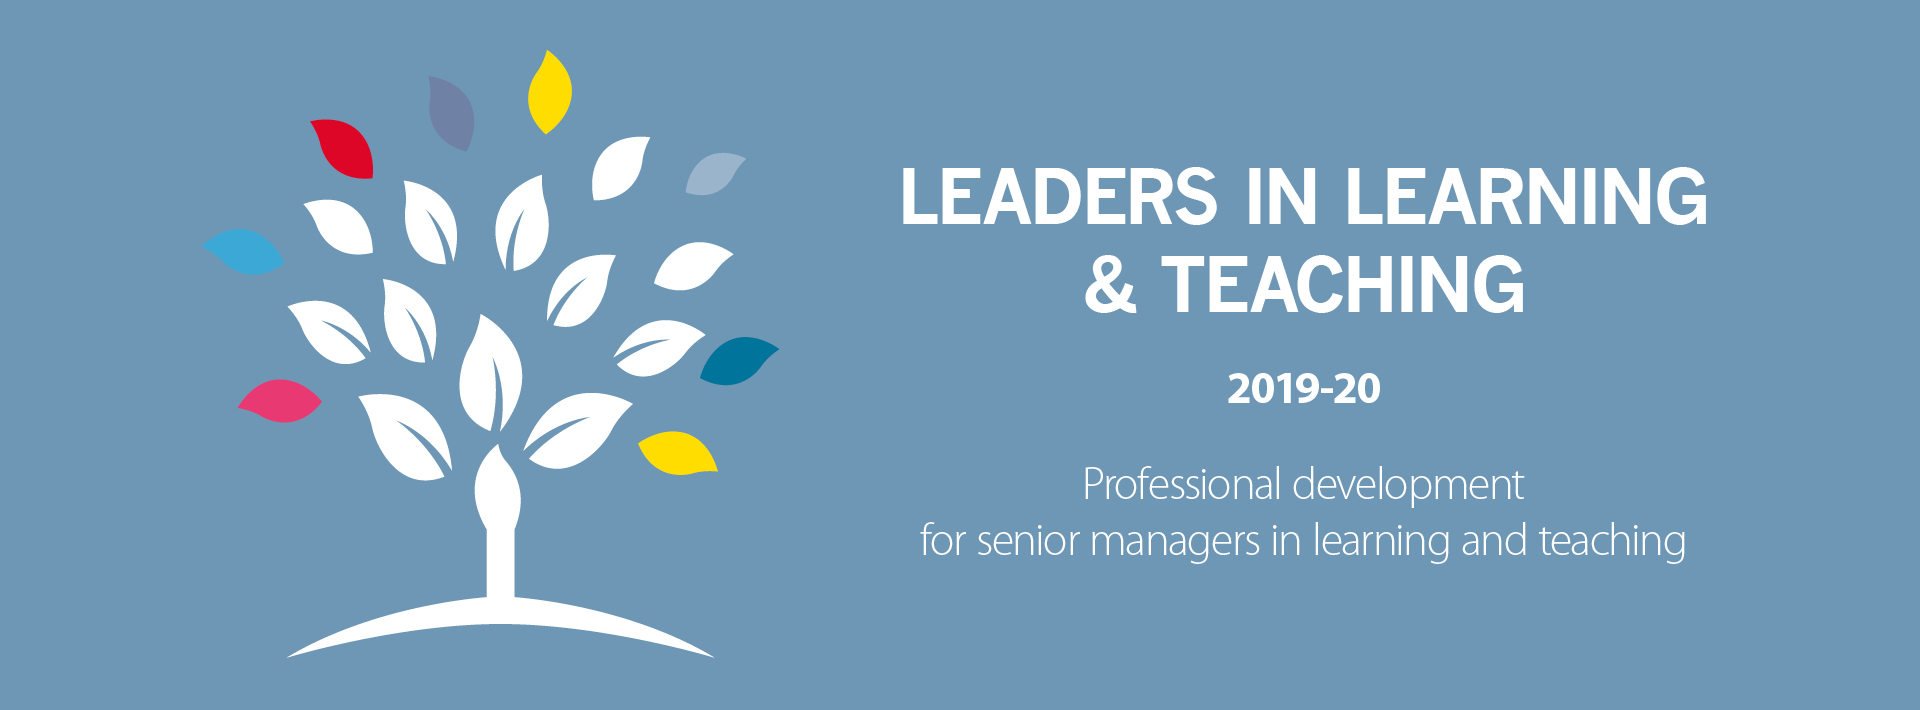 Leaders in Learning & Teaching (LLT) 2019 – 2020 - Chartered